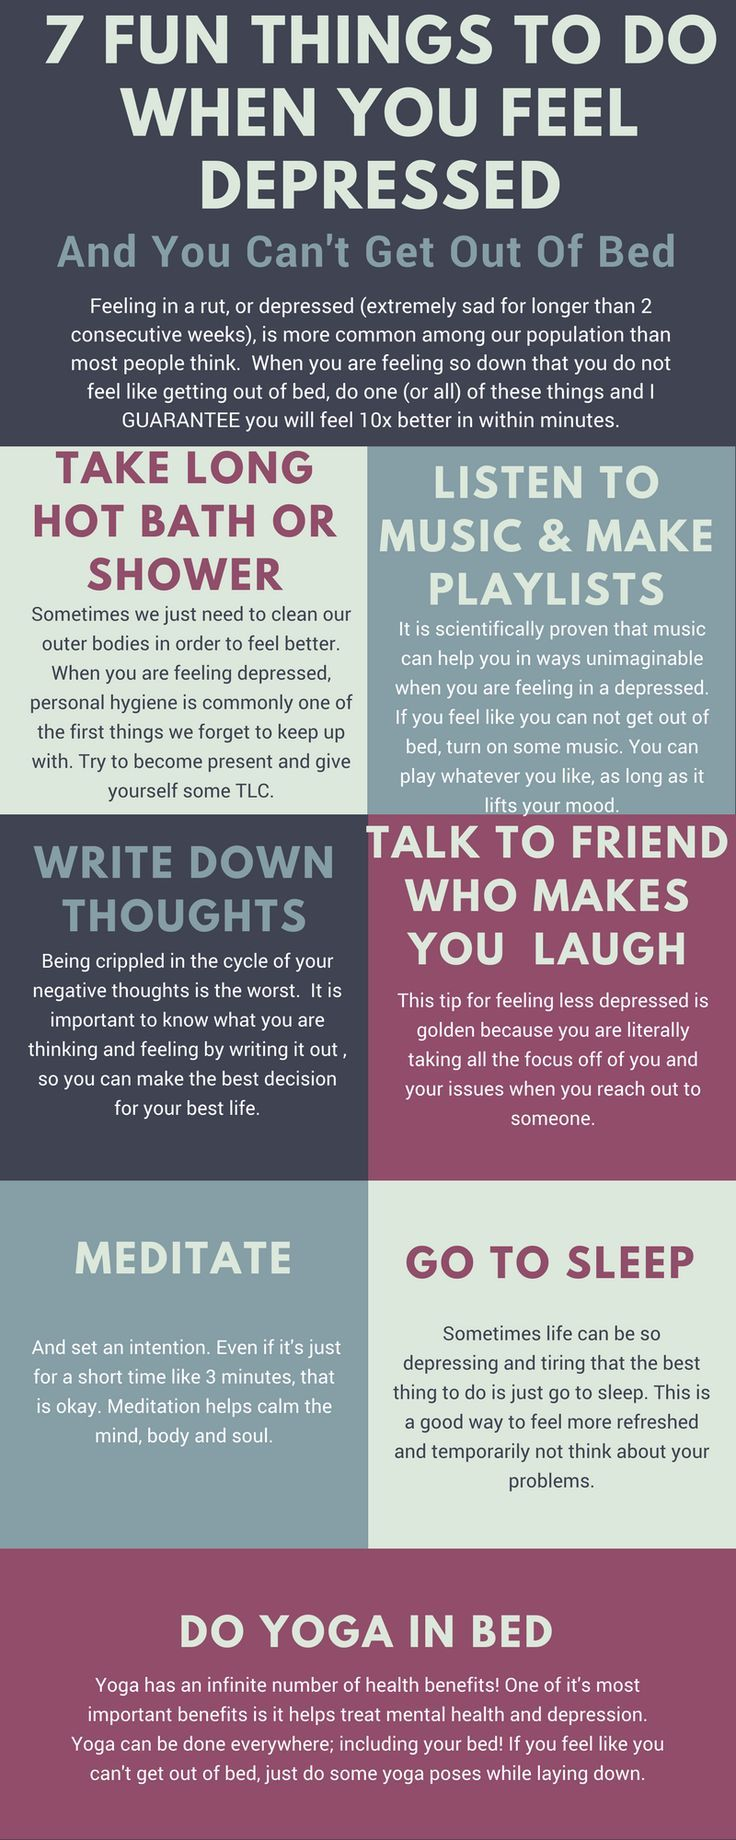 7 fun things to do when you feel extremely depressed!  #selfcare #selflove #personalgrowth #personaldevelopment #success #selfcaretips #productivity #mentalhealth #mentalhealthawareness #depressed #anxiety